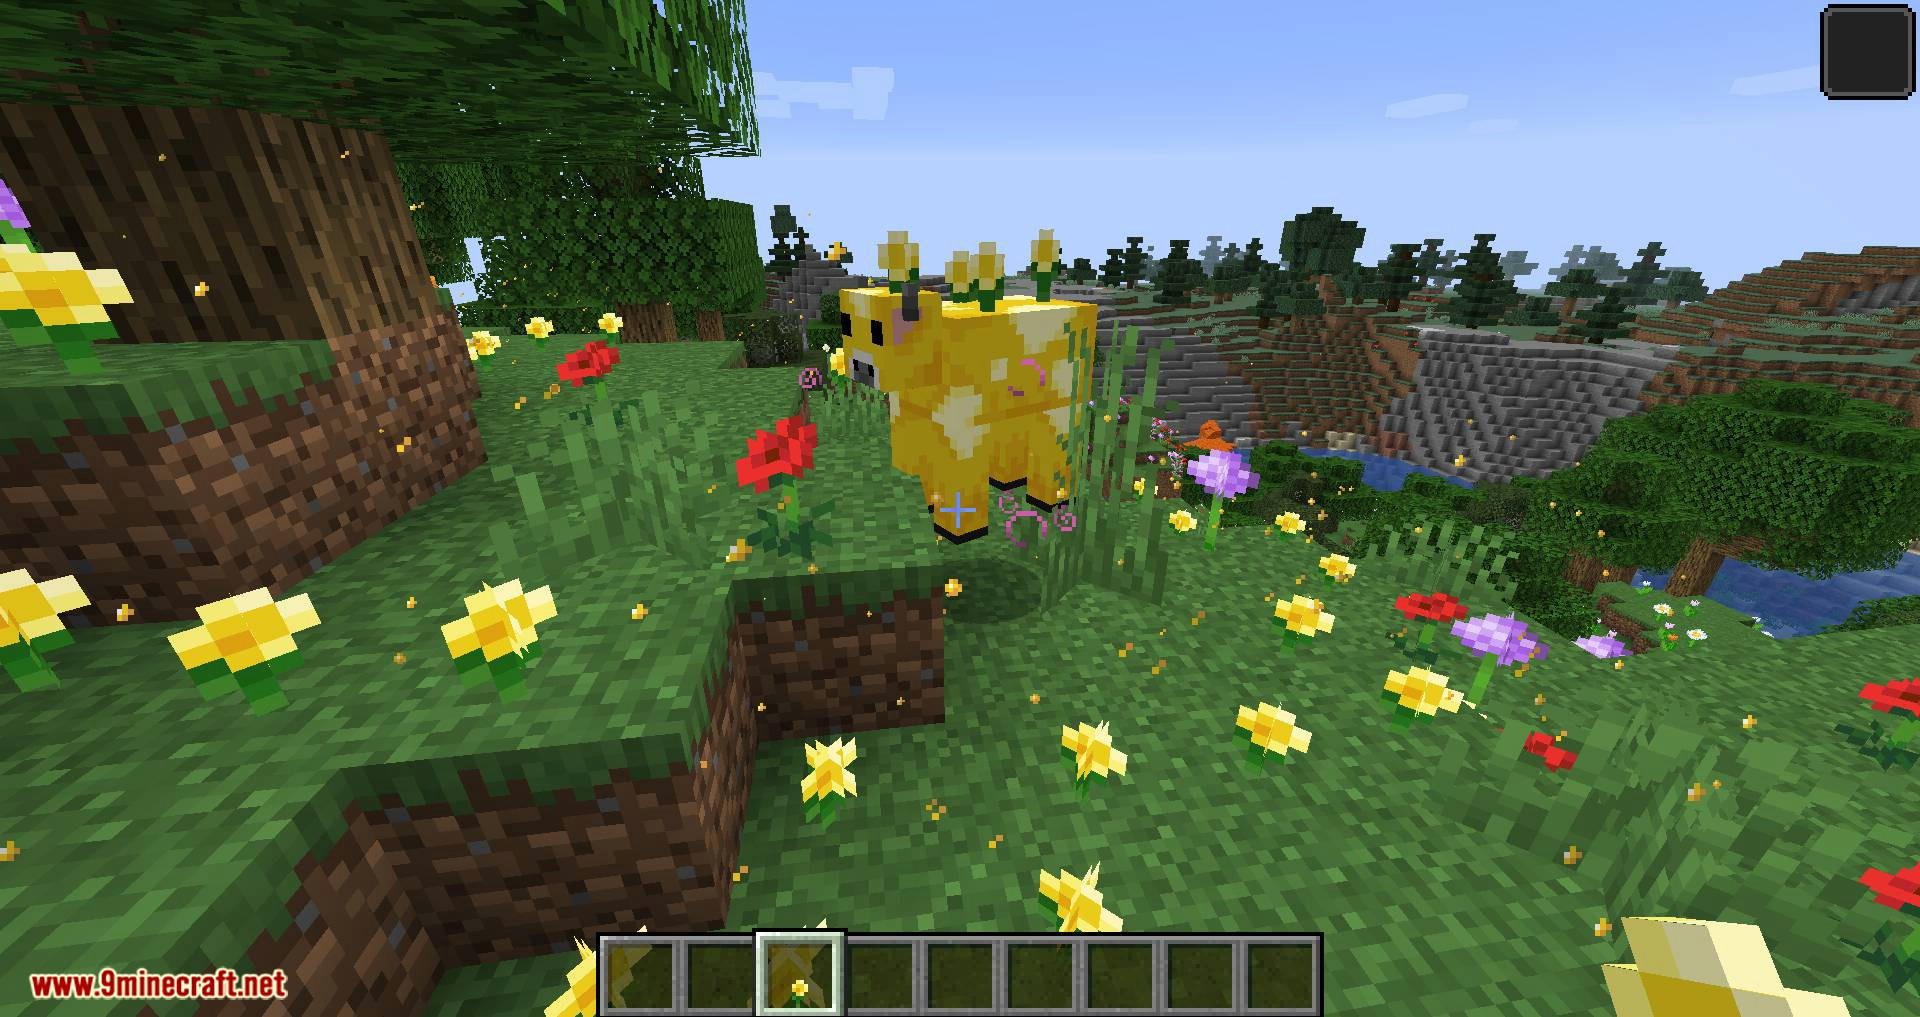 Earth Mobs mod for minecraft 02